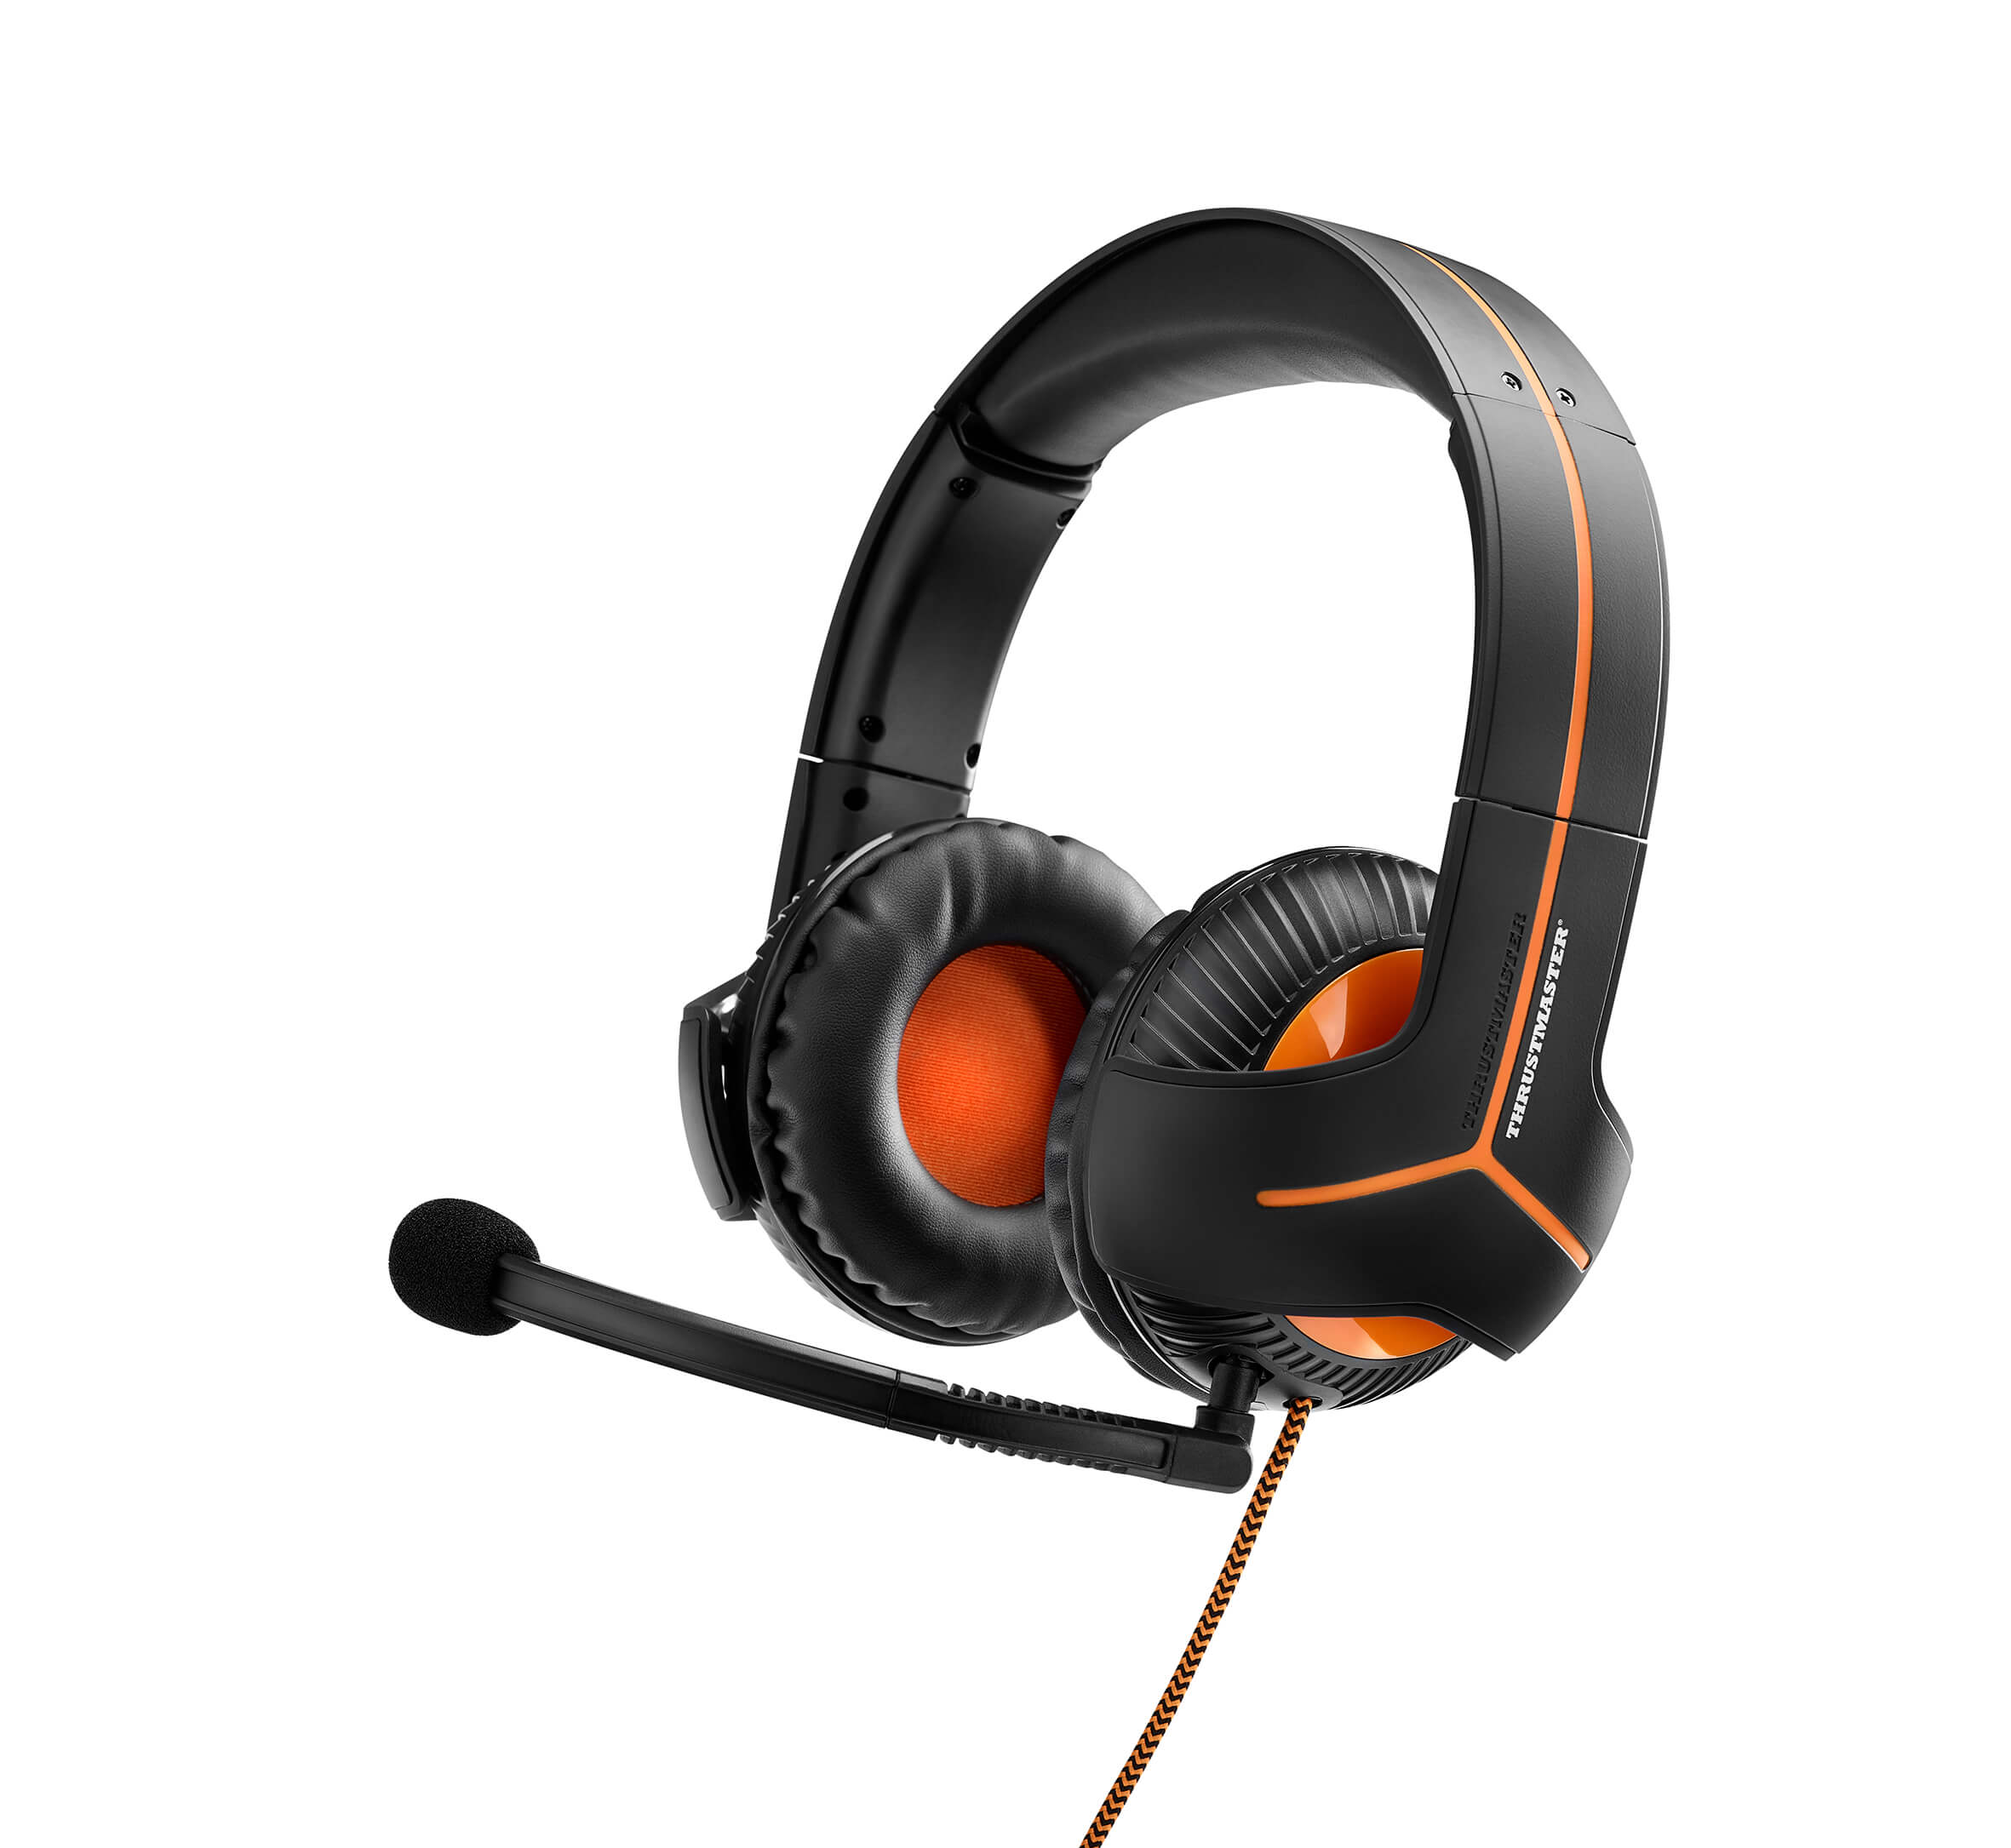 auriculares 7.1 xbox one